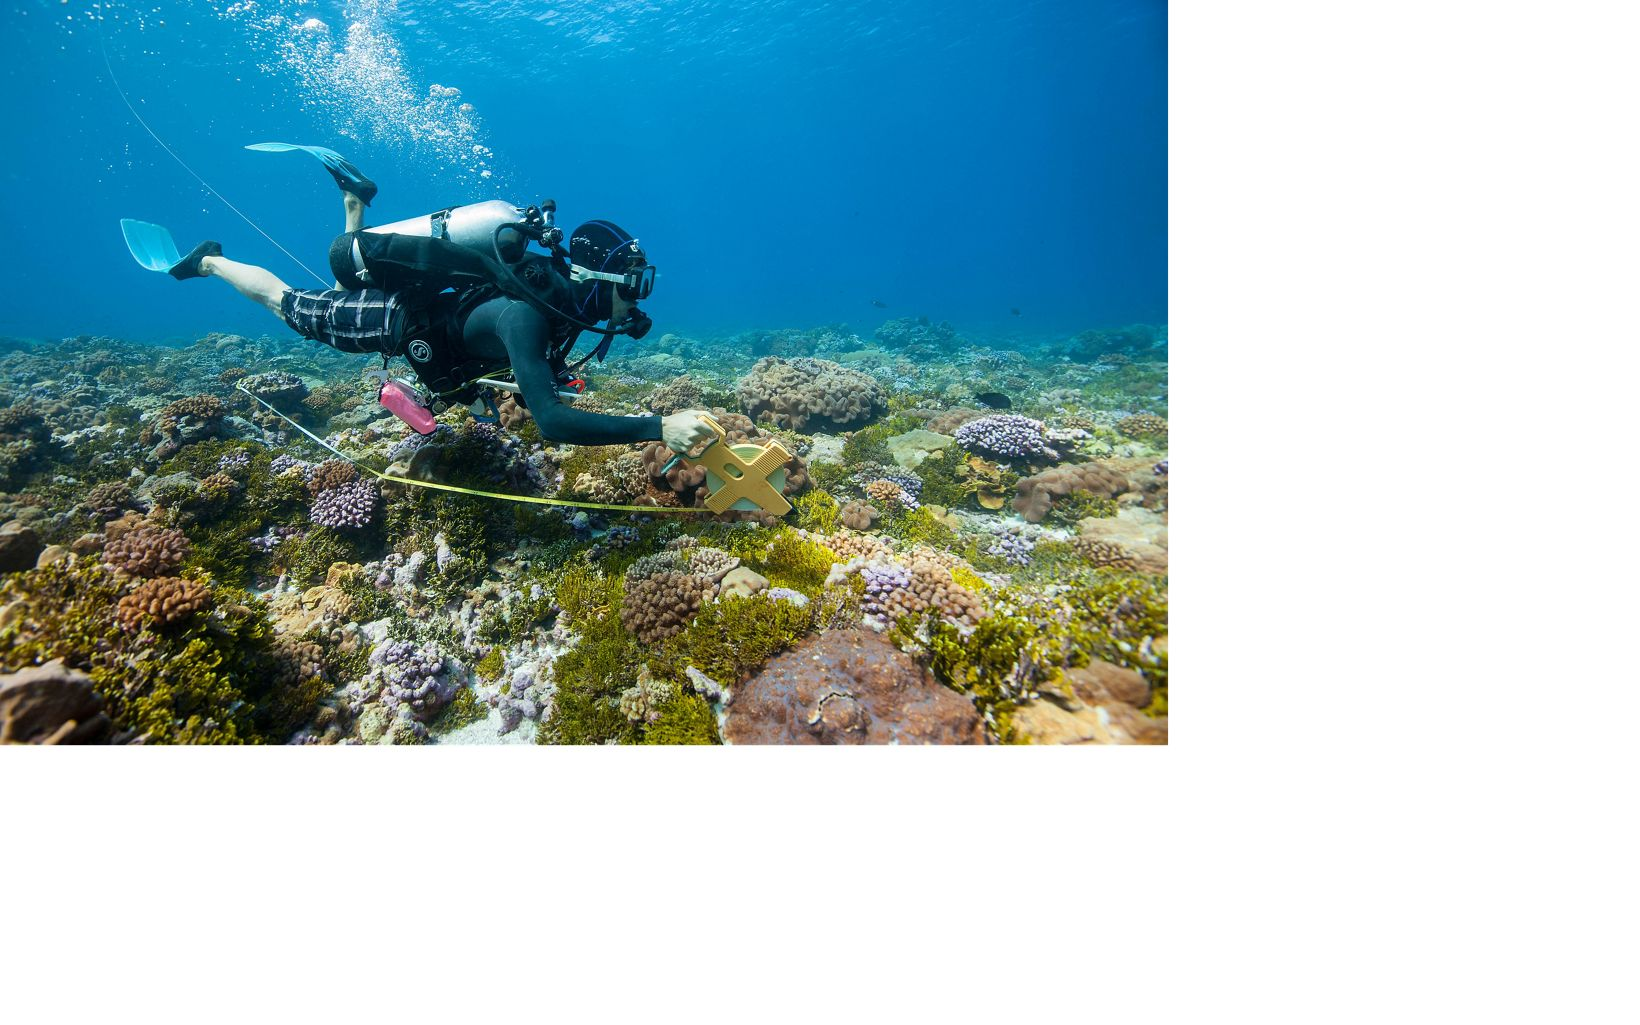 NC researcher, Meaghan Johnson studies Perfection Reef, the site of elkhorn coral outplanting by The Nature Conservancy in Dry Tortugas National Park.